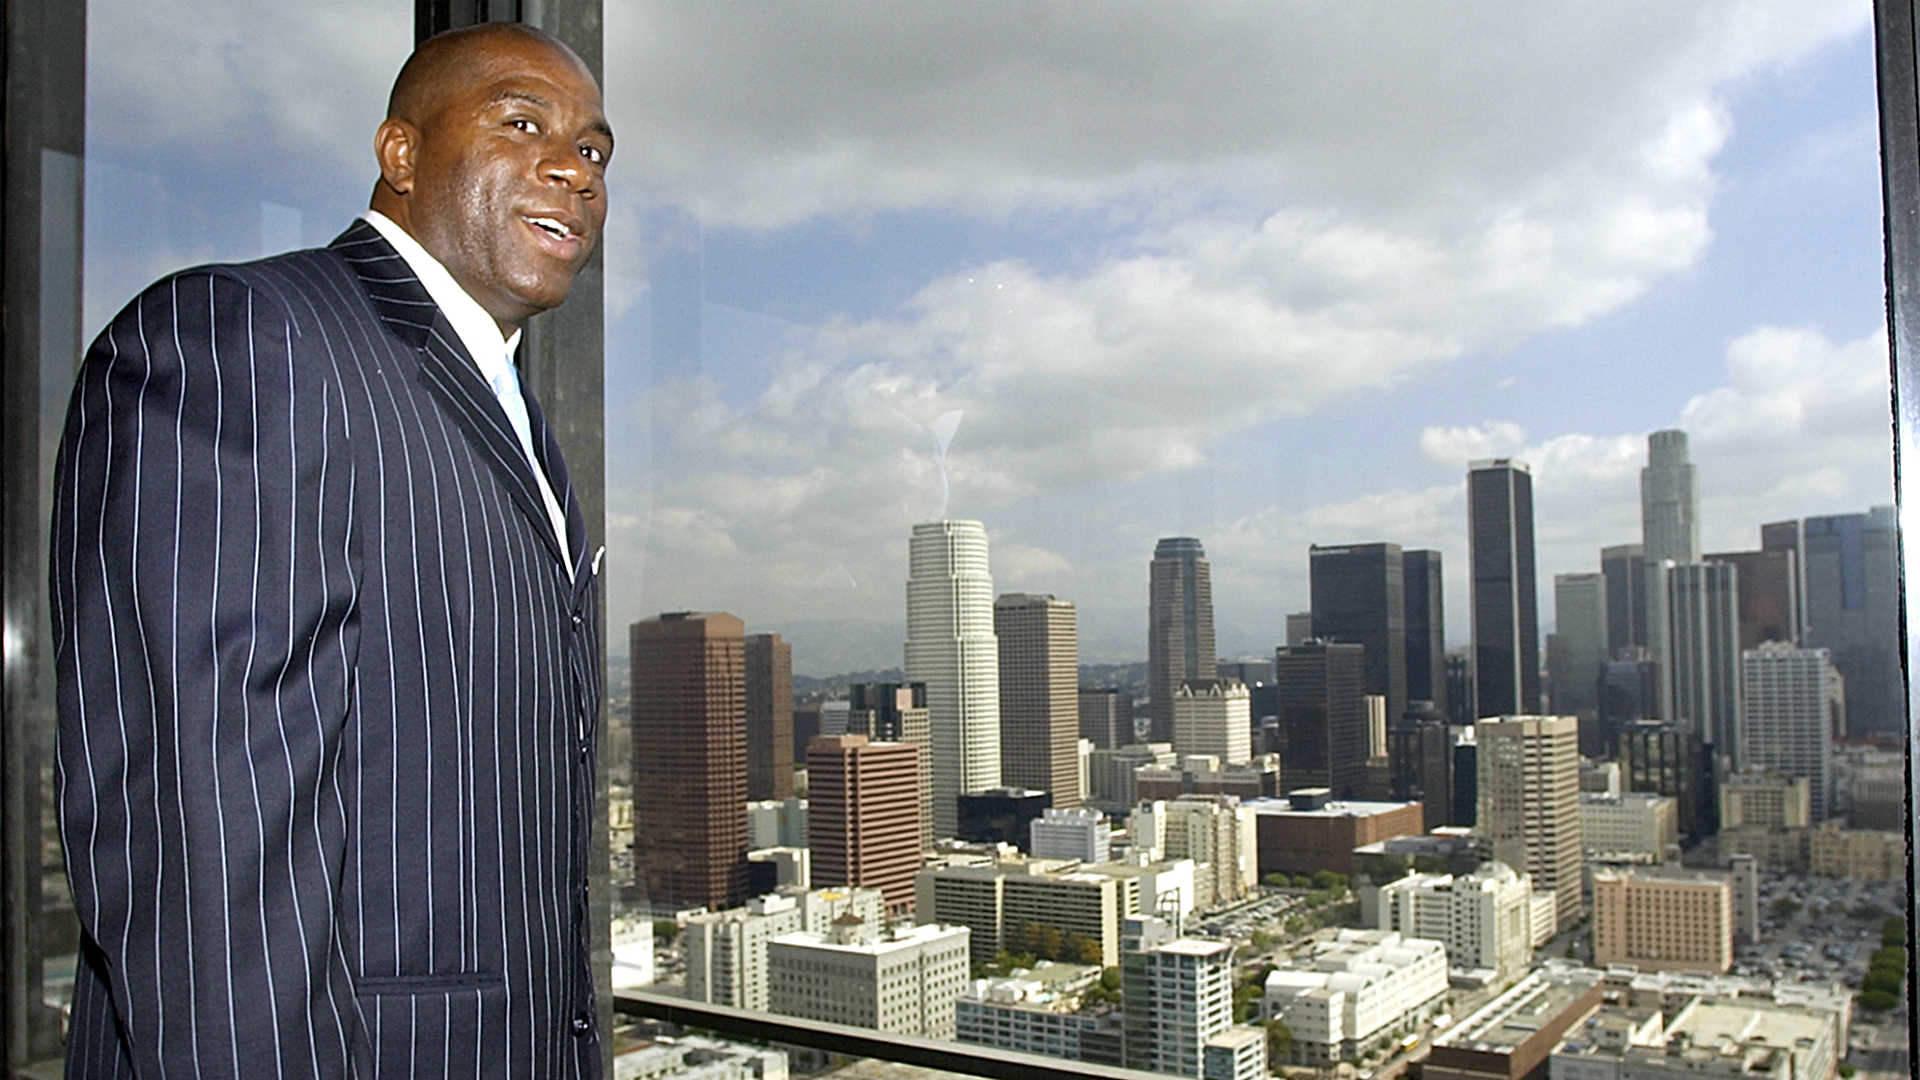 Magic Johnson-1514-AP-FTR.jpg